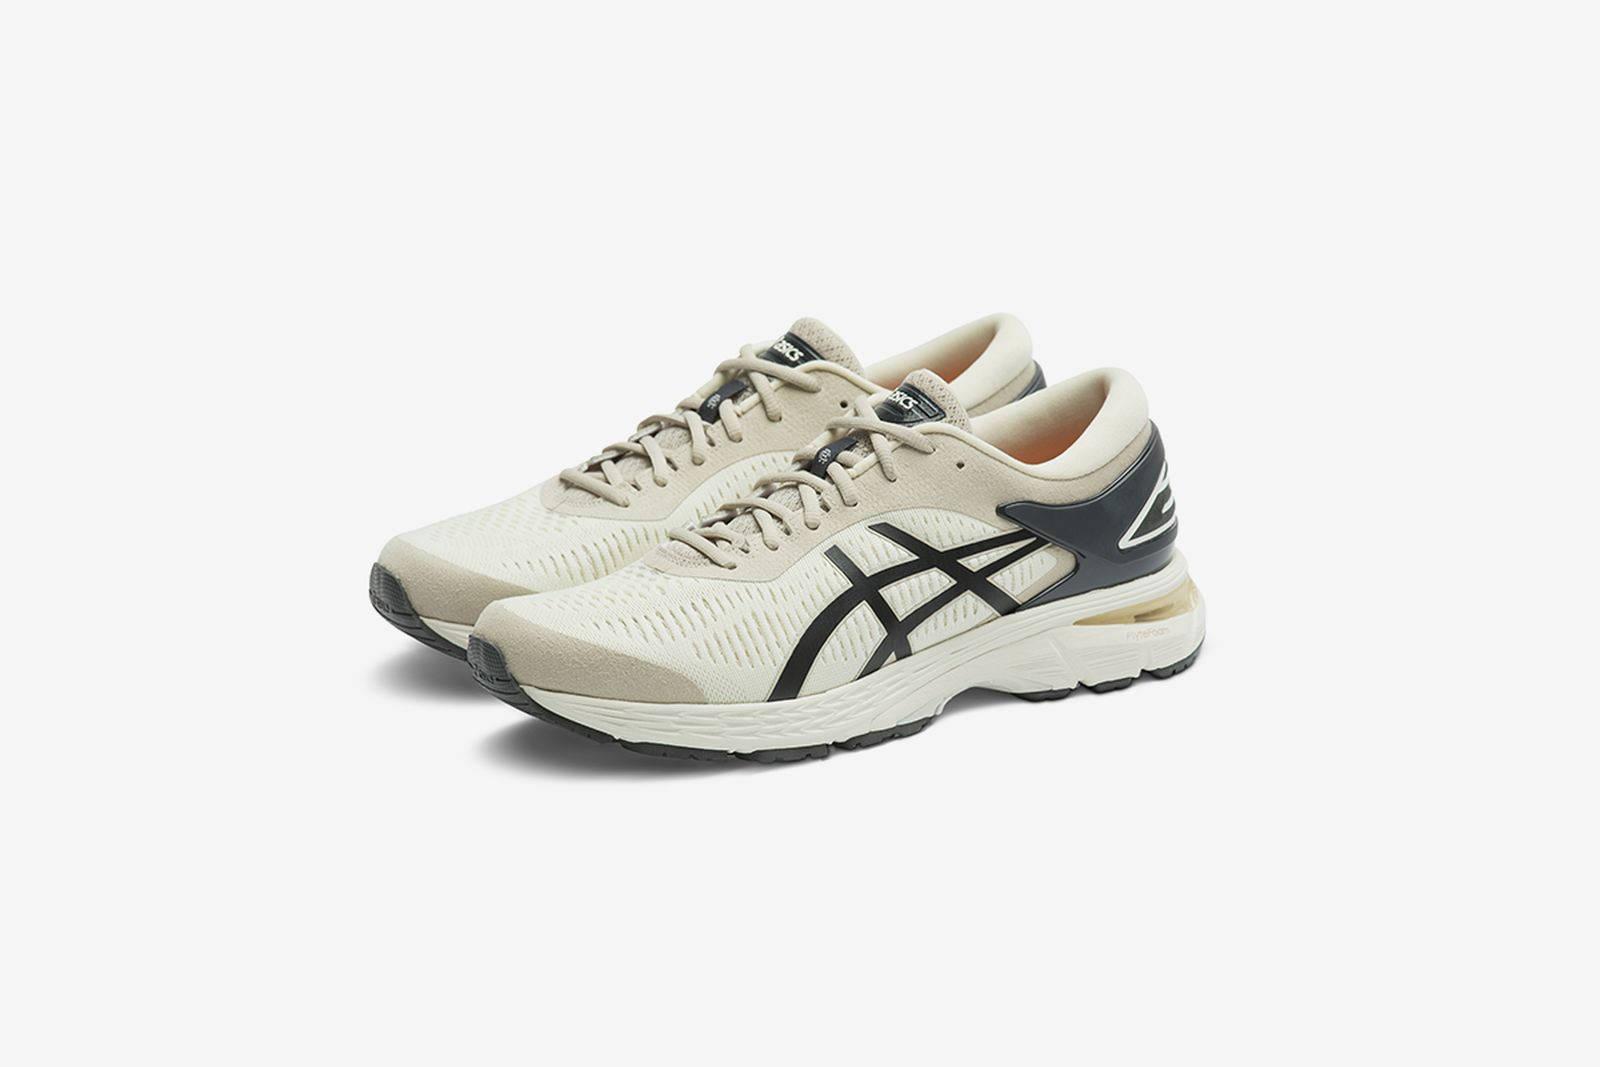 reigning champ asics kyoto edition release date price 1